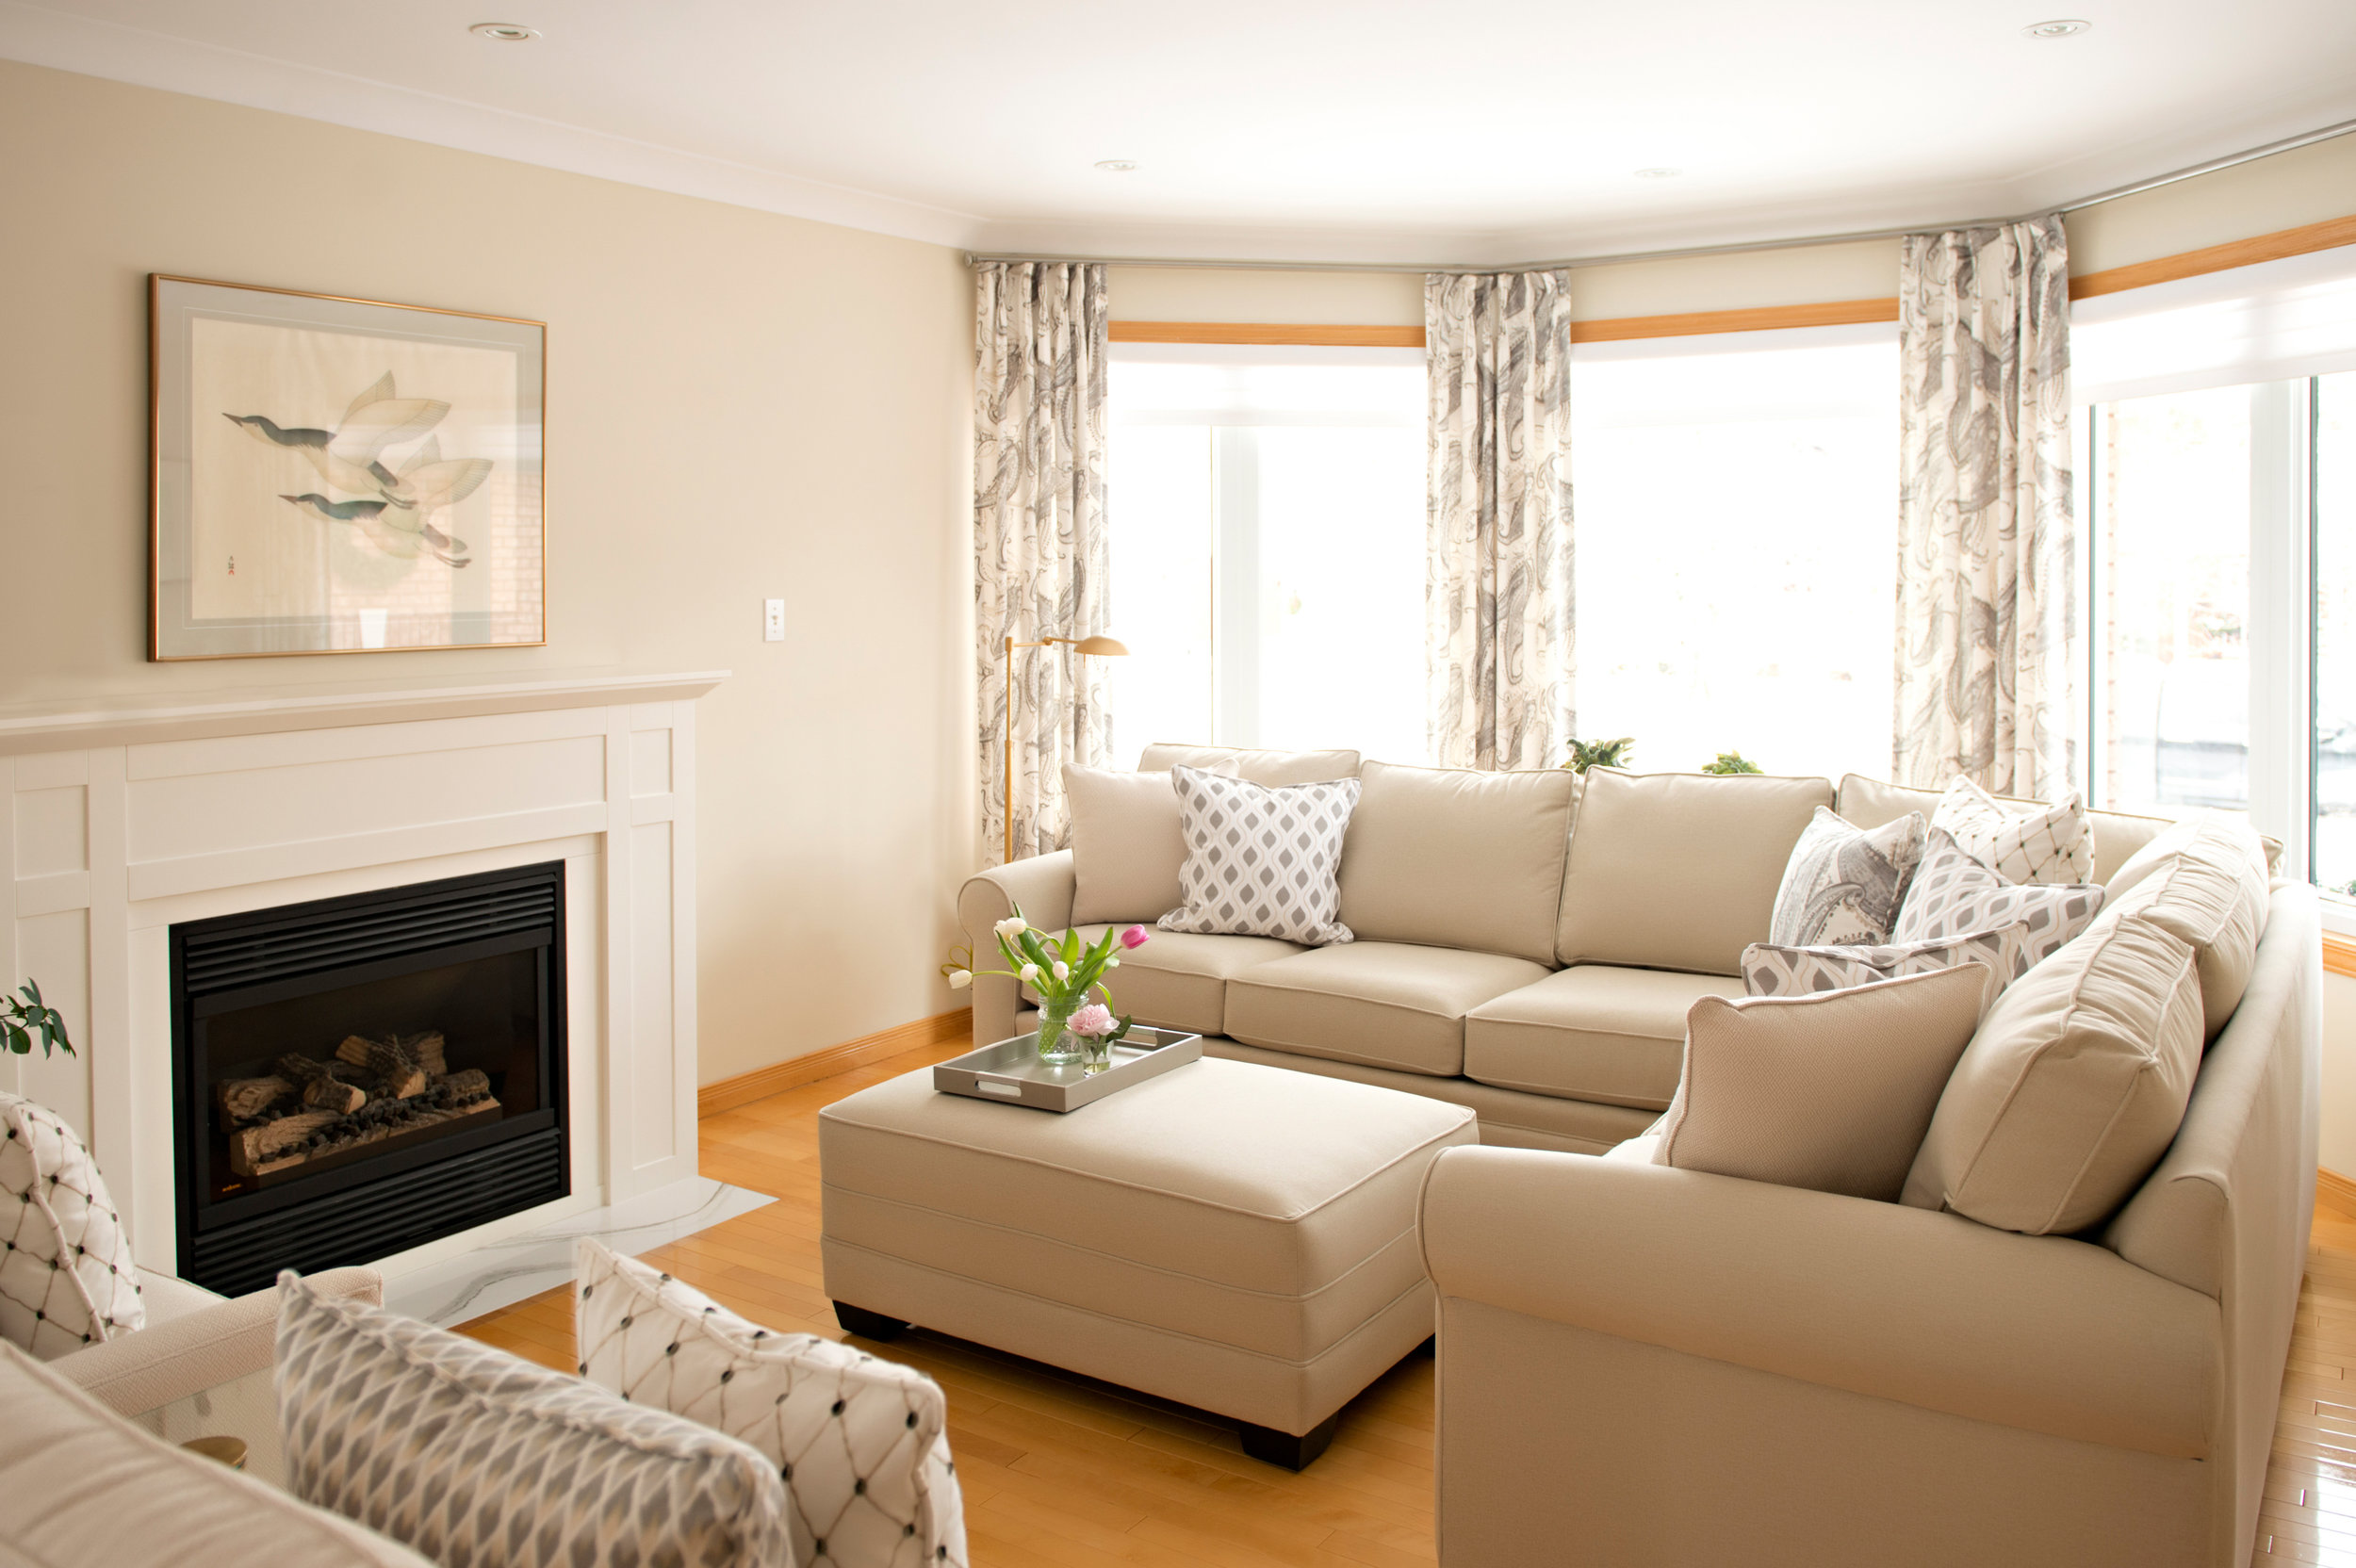 Interior-Design-Cedar-Brae-Project-Living-Room-Sofa-Beige-Fireplace